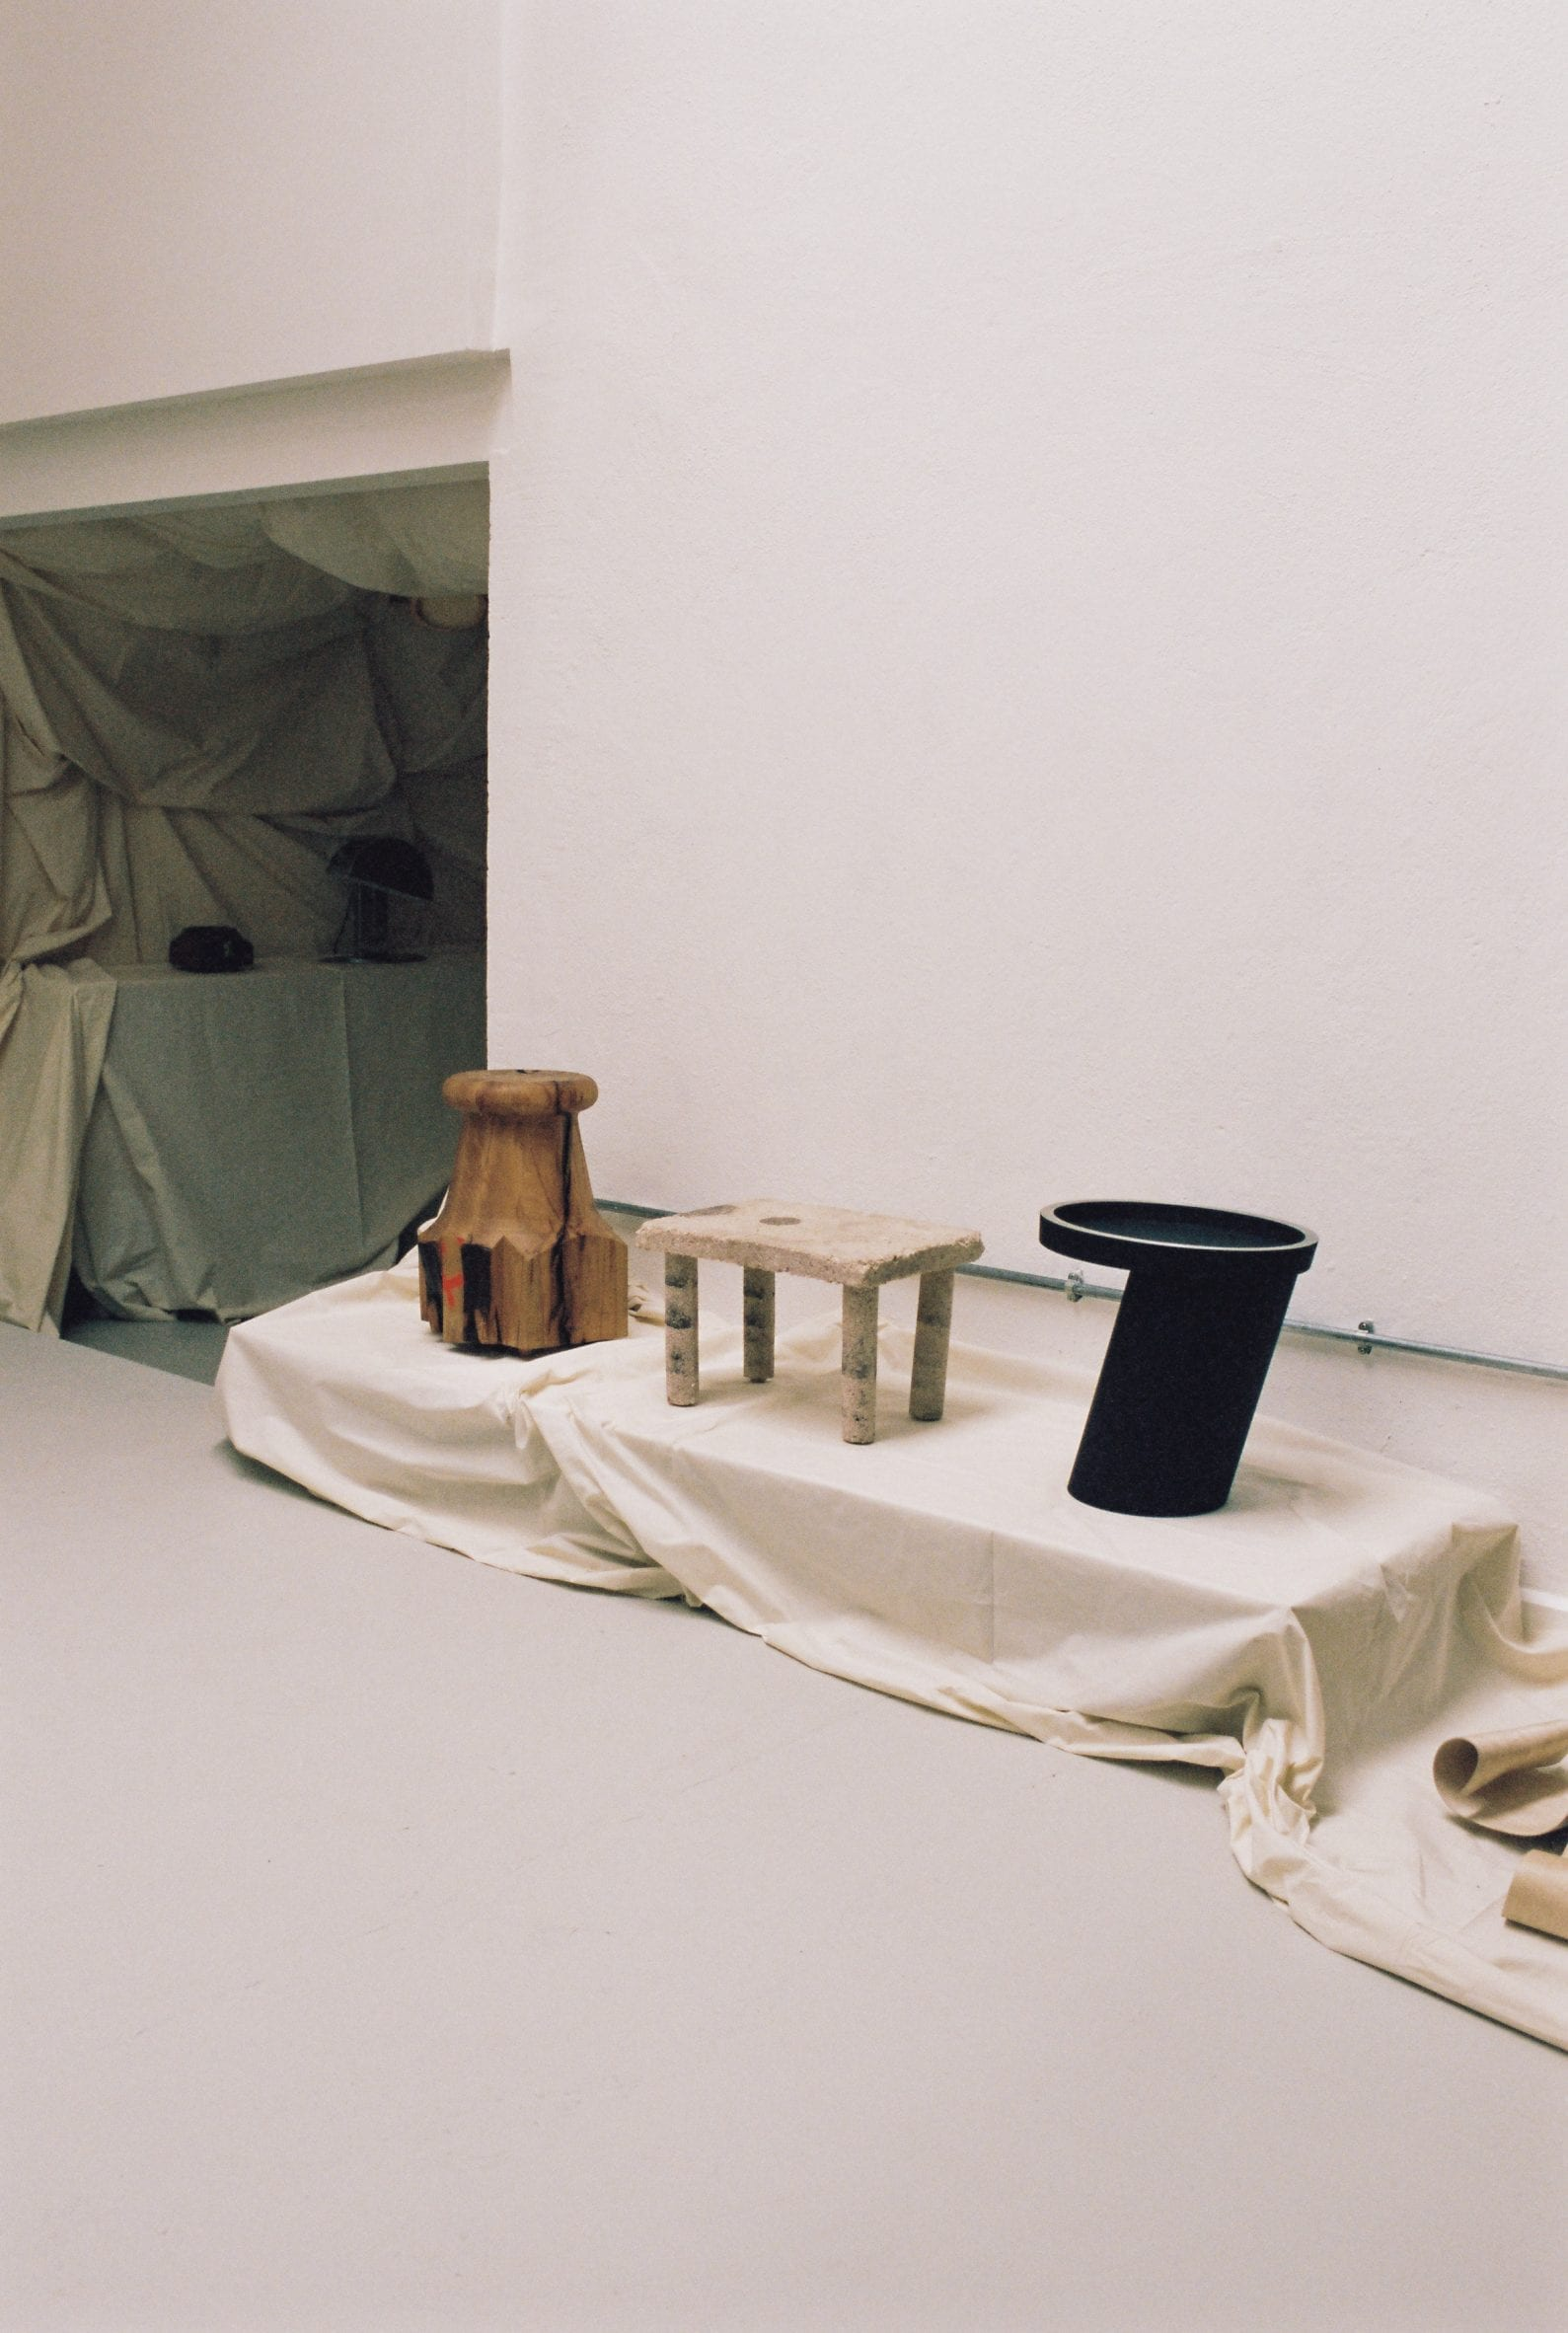 Objects were places atop fabric draped plinths at The Radford Gallery